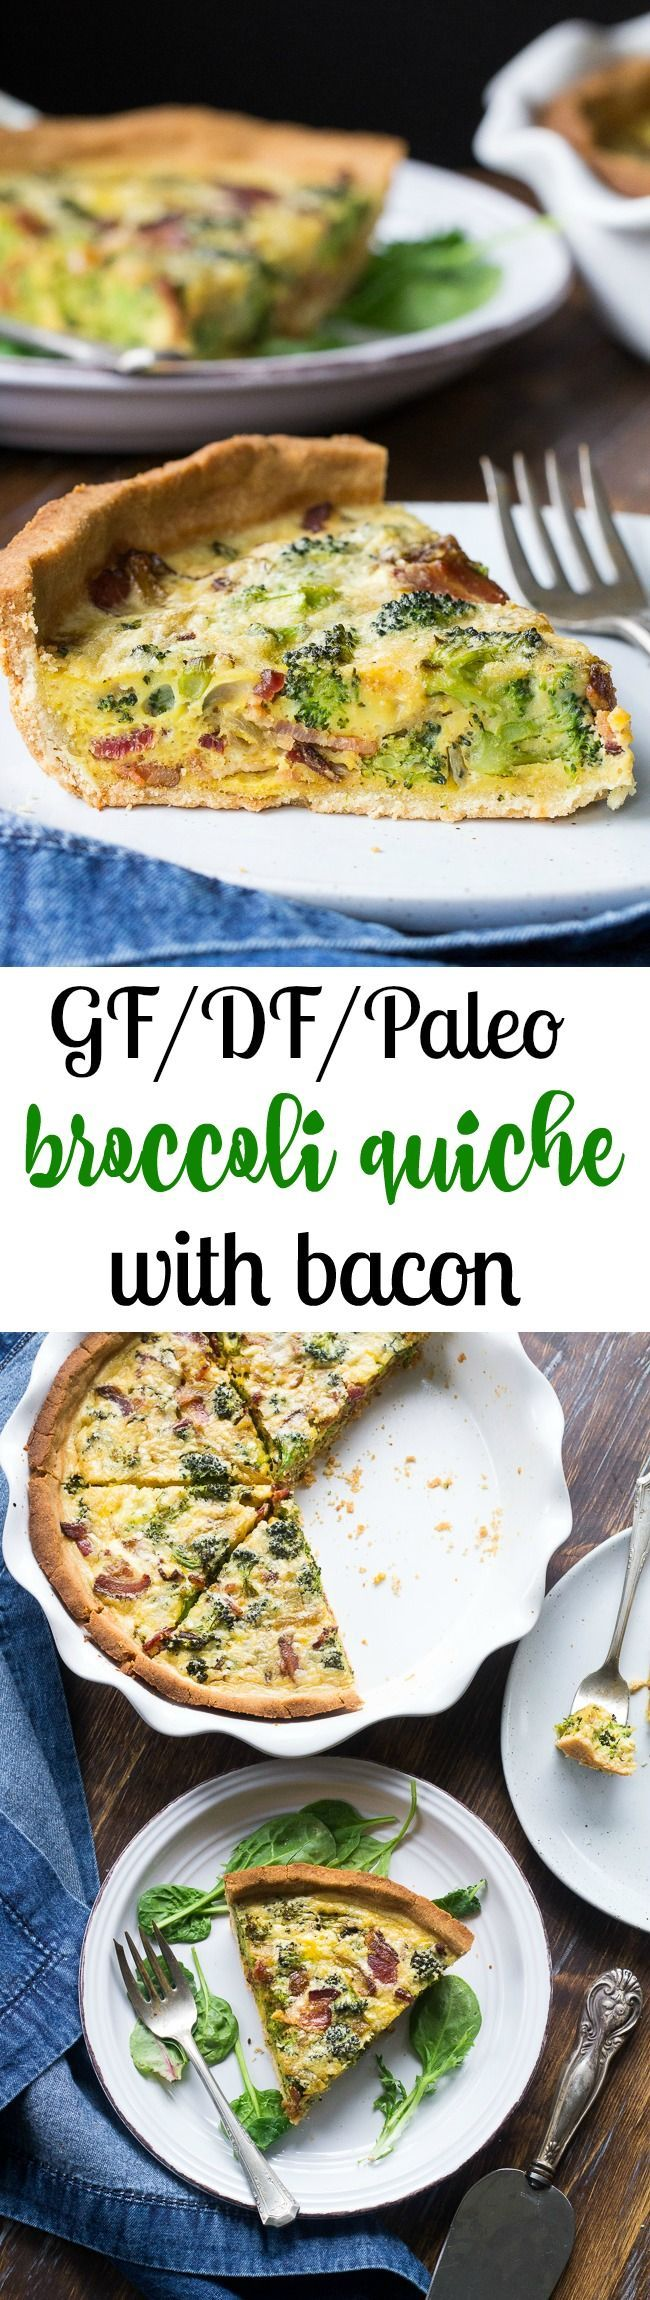 """This Paleo broccoli quiche is easy to make and perfect as a make ahead breakfast or to bring to brunch for Easter, Mother's Day or anything else! It's loaded with caramelized onions, savory sautéed broccoli and crisp bacon, plus has a secret """"cheesy"""" ingredient while remaining dairy free! Grain free, gluten free, healthy."""